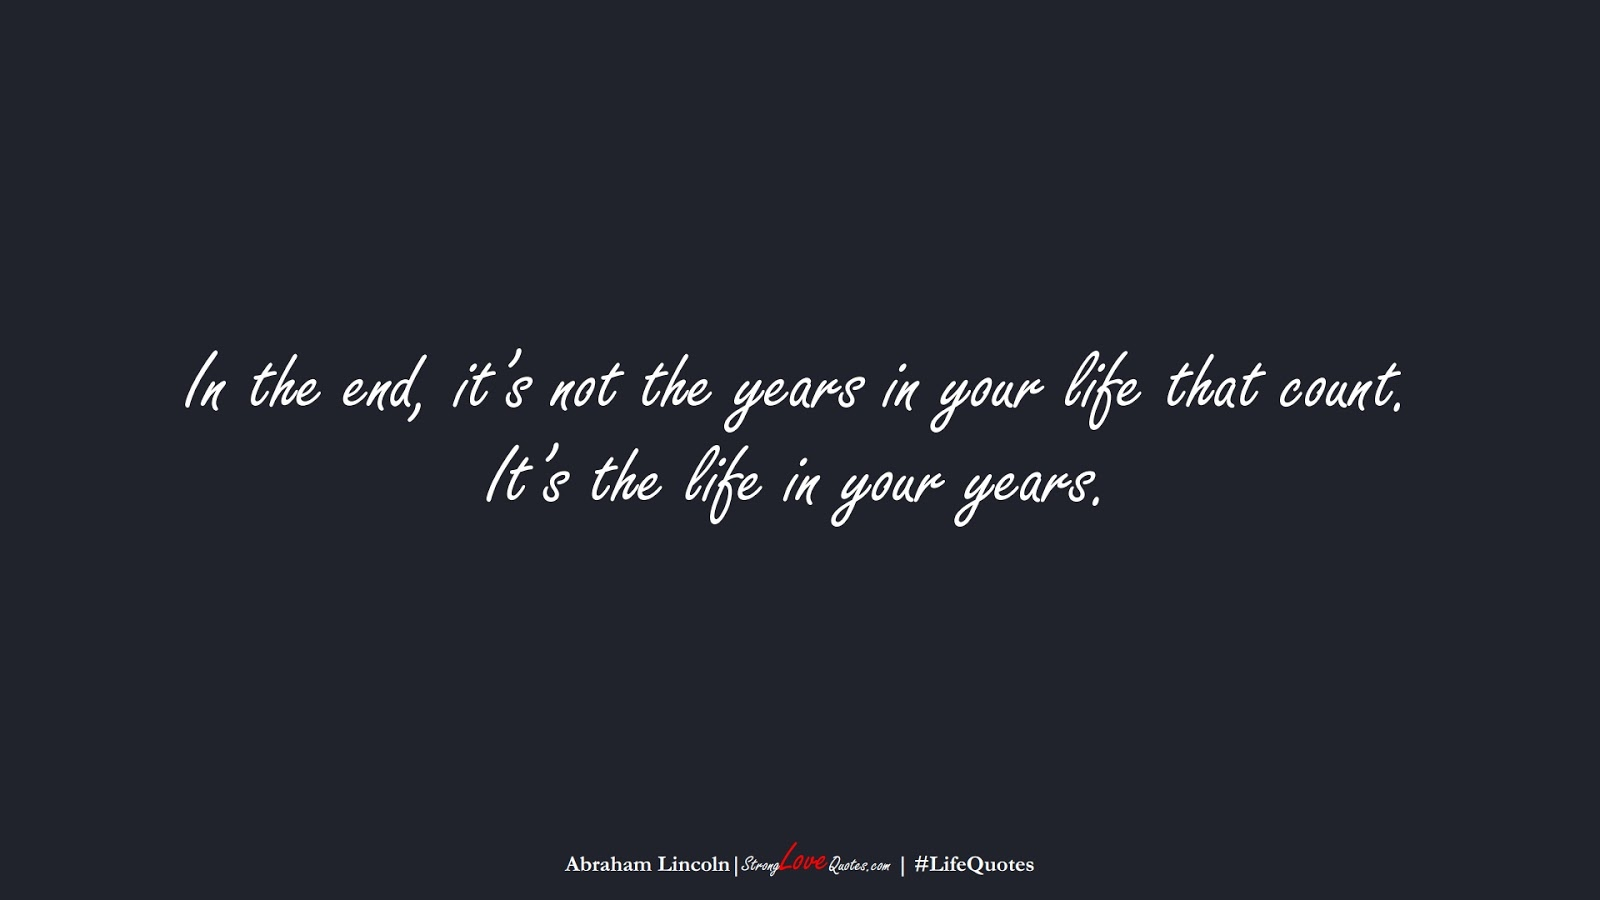 In the end, it's not the years in your life that count. It's the life in your years. (Abraham Lincoln);  #LifeQuotes